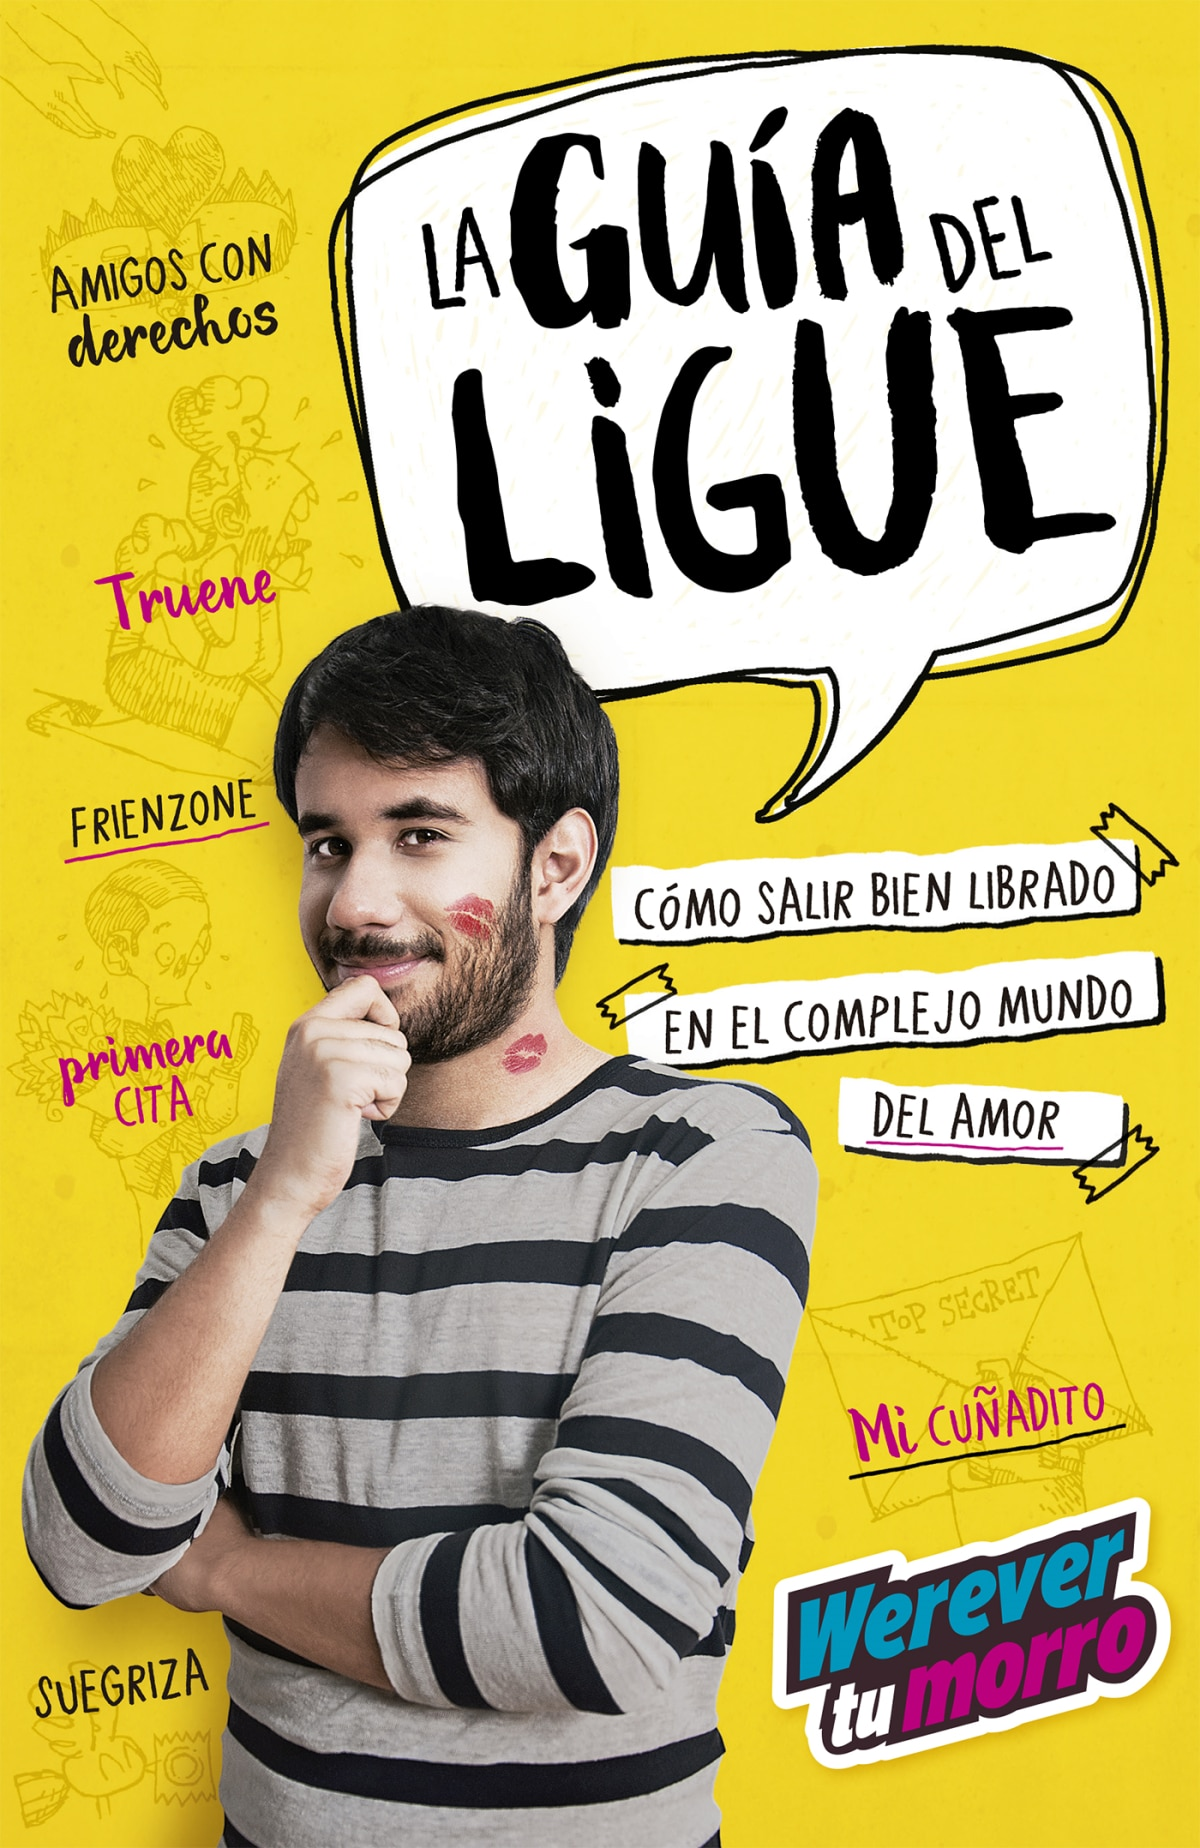 La guía del ligue (Werevertumorro)